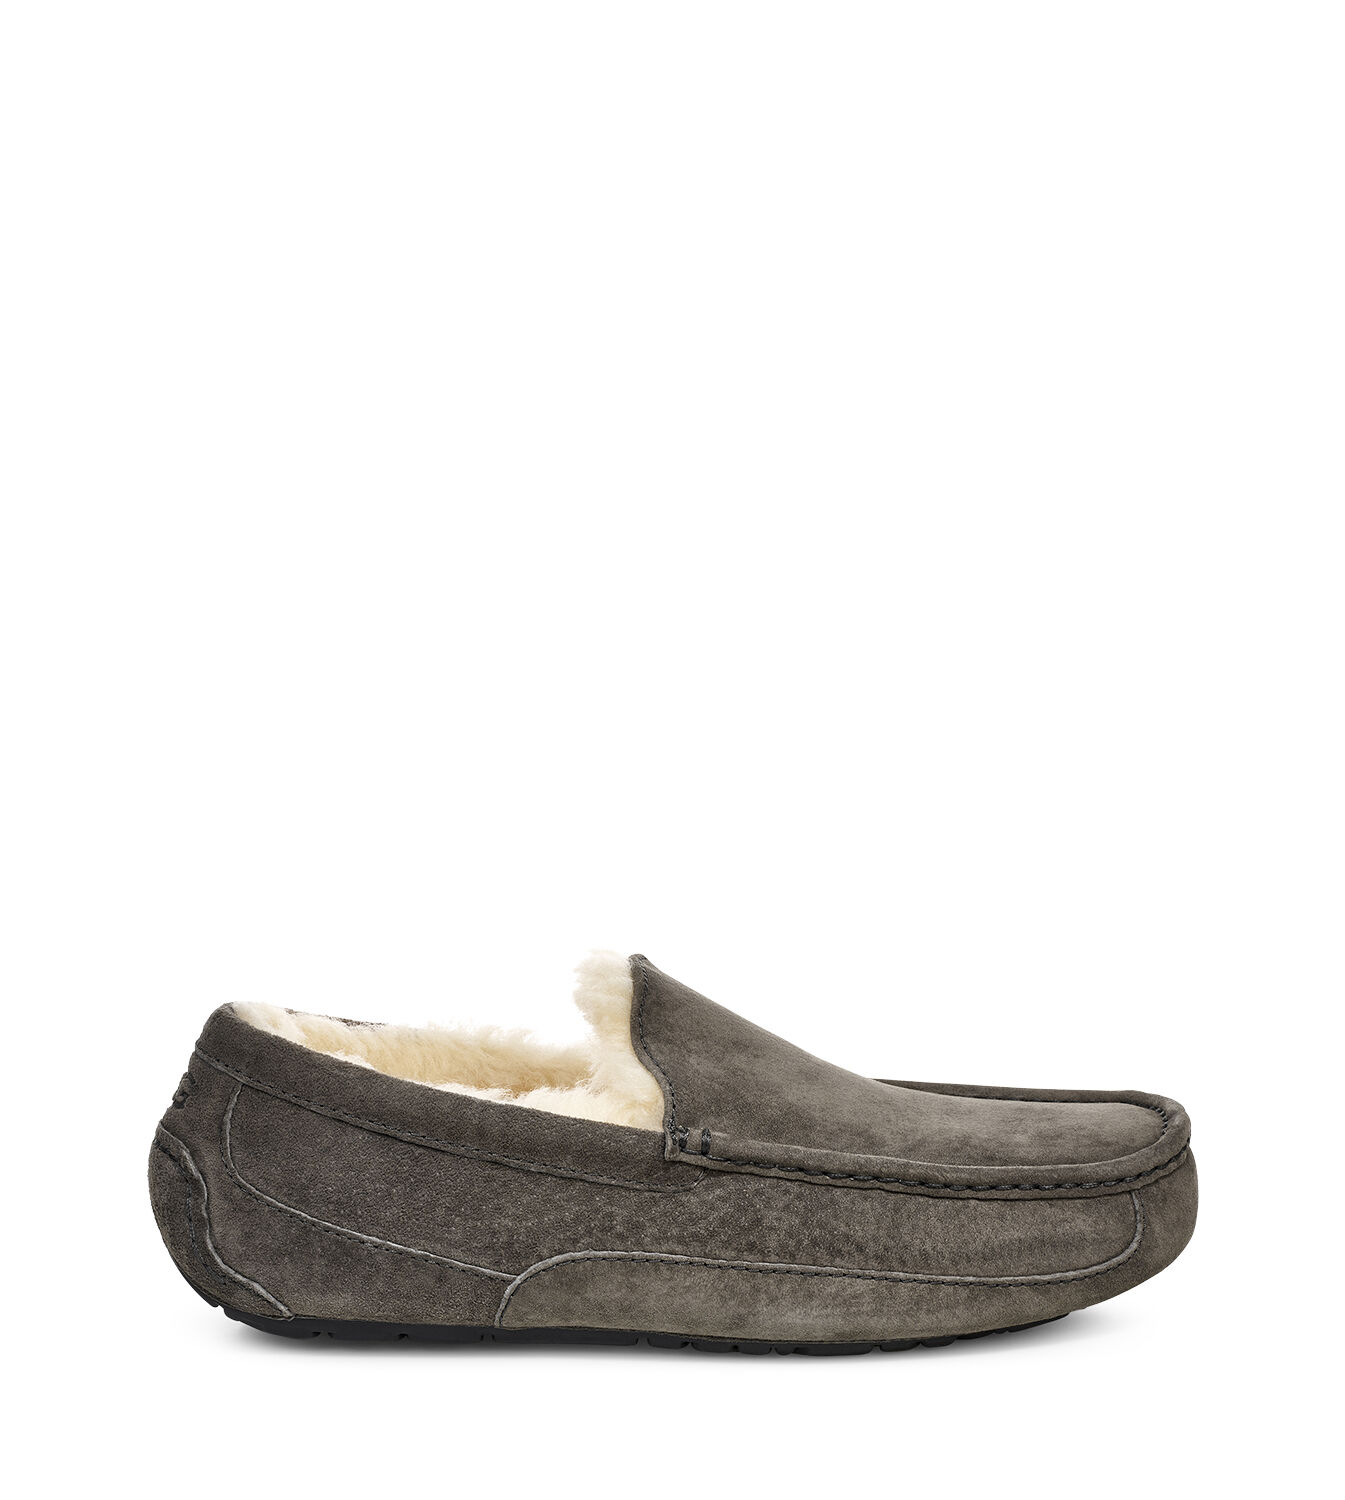 chaussons ugg homme 46